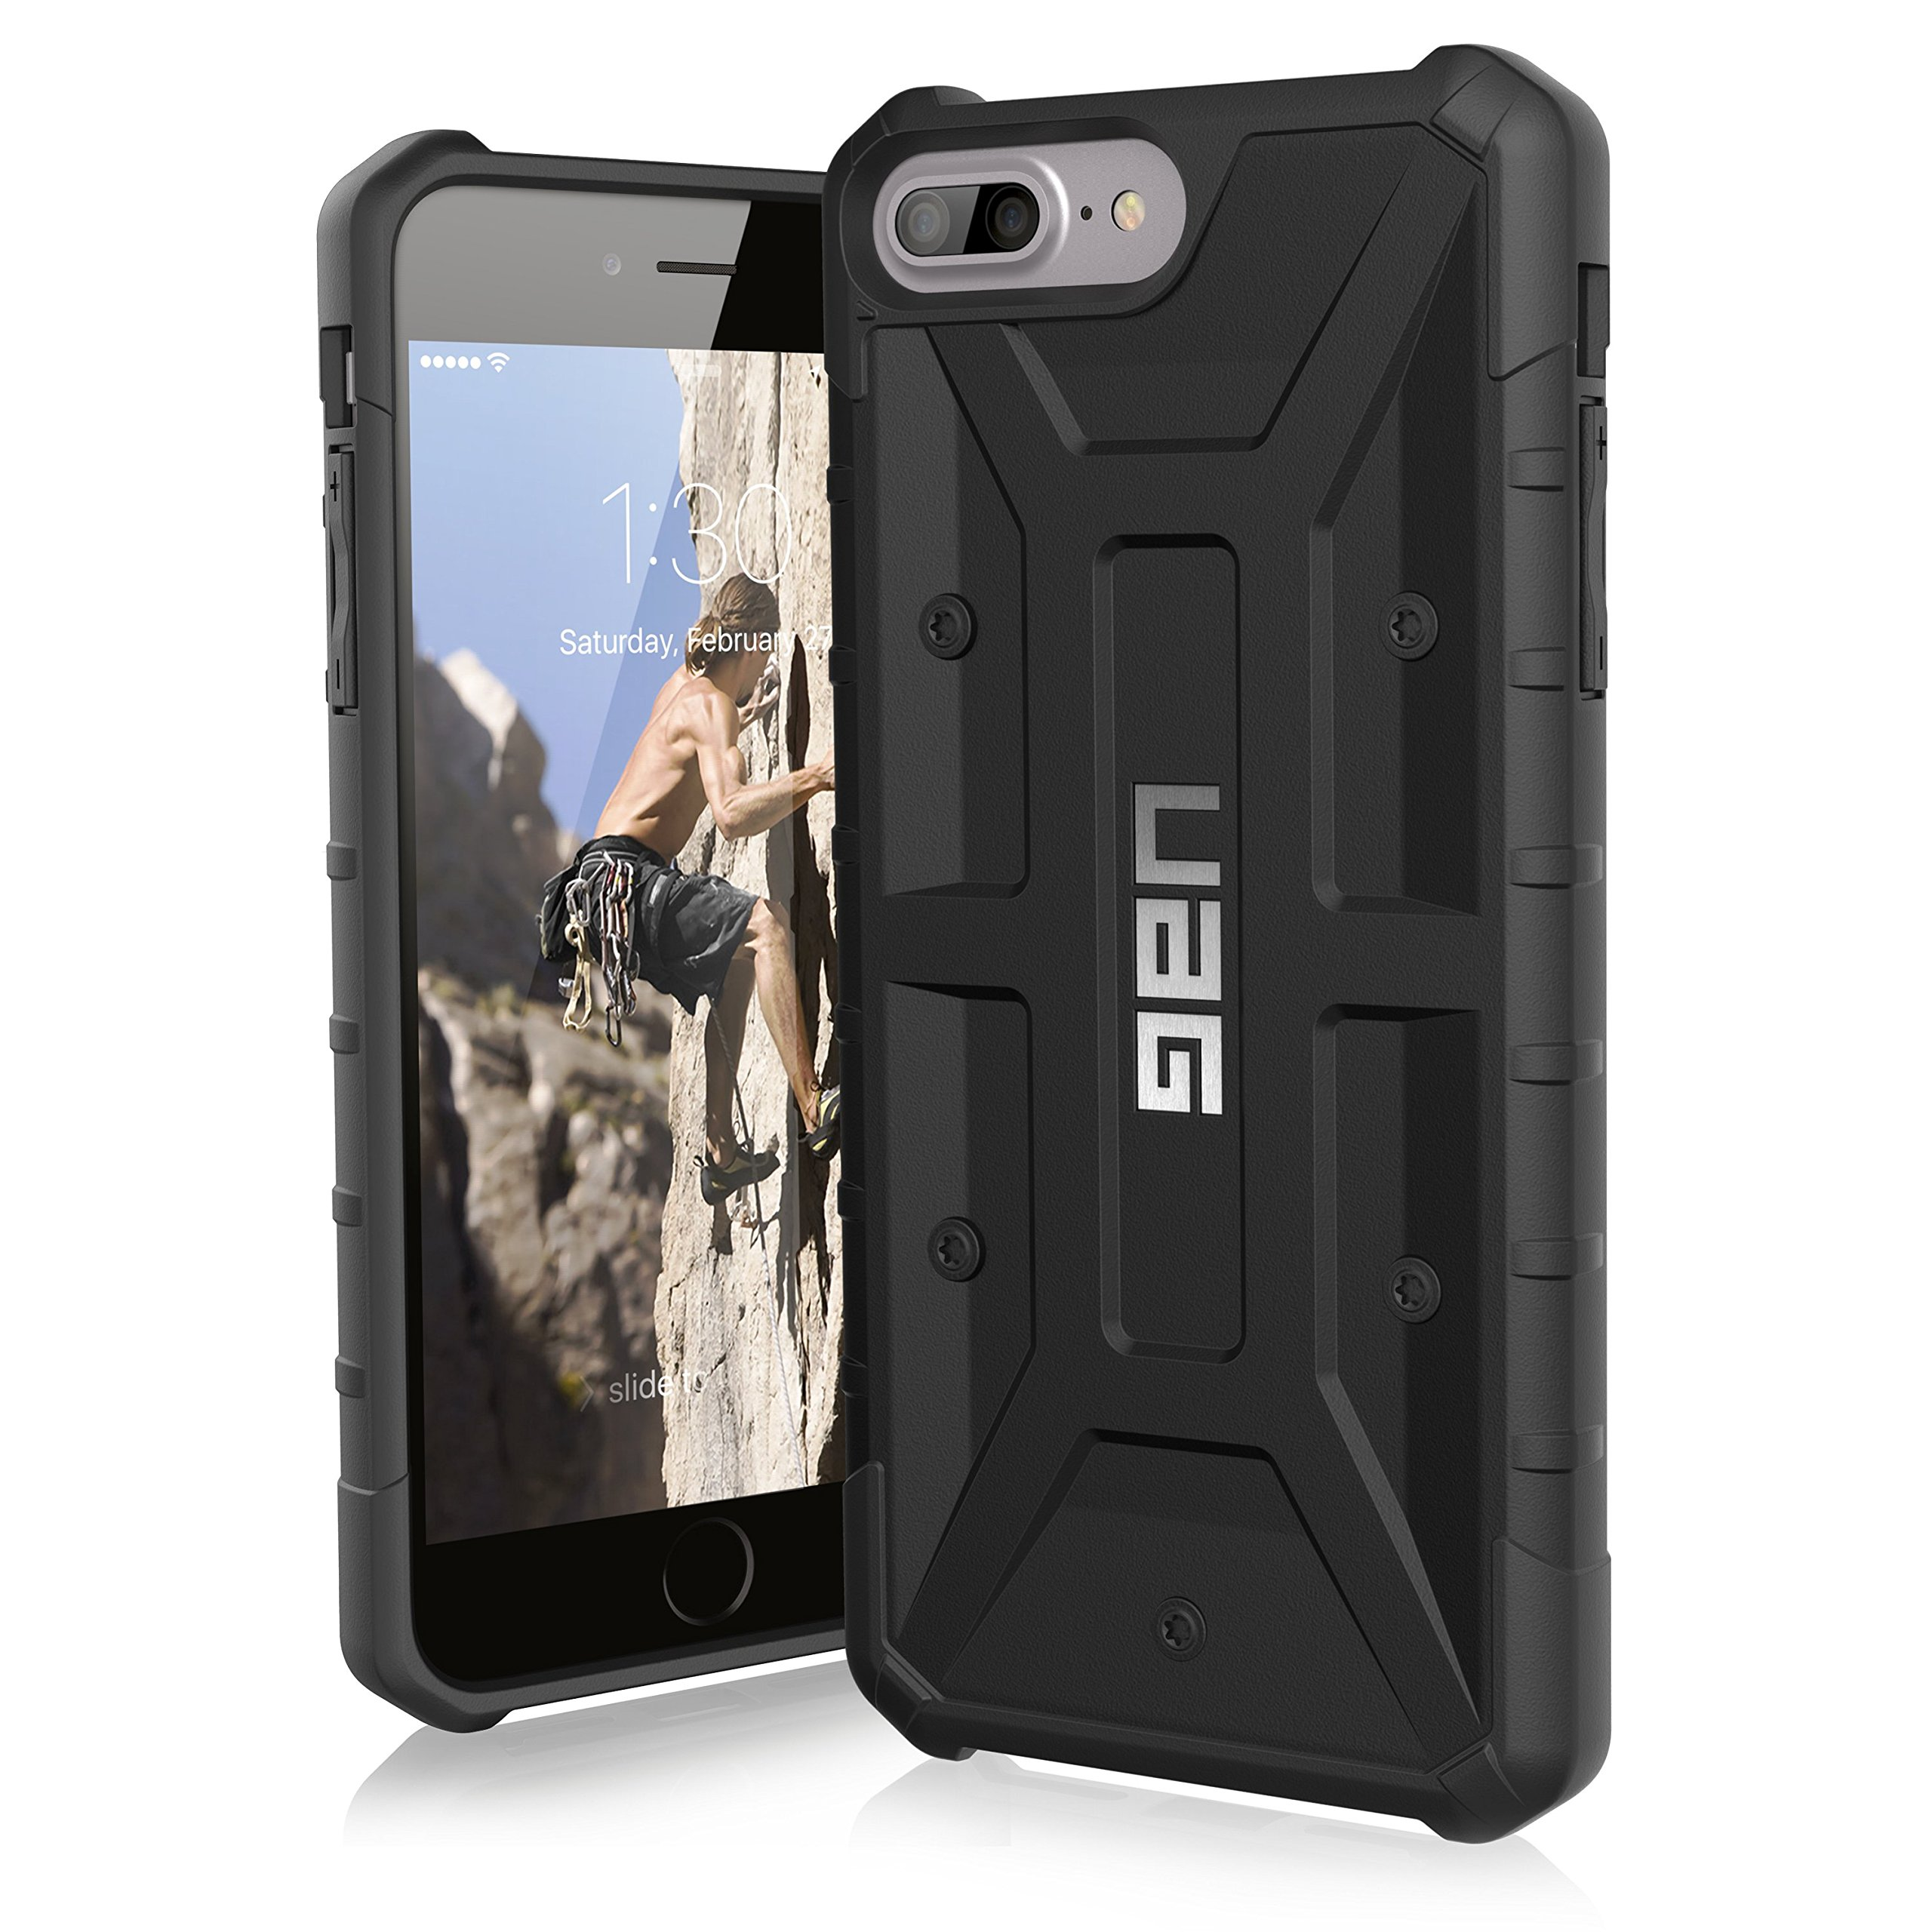 Funda UAG para Iphone 8 Plus/7 Plus (1IA8Z2CO)